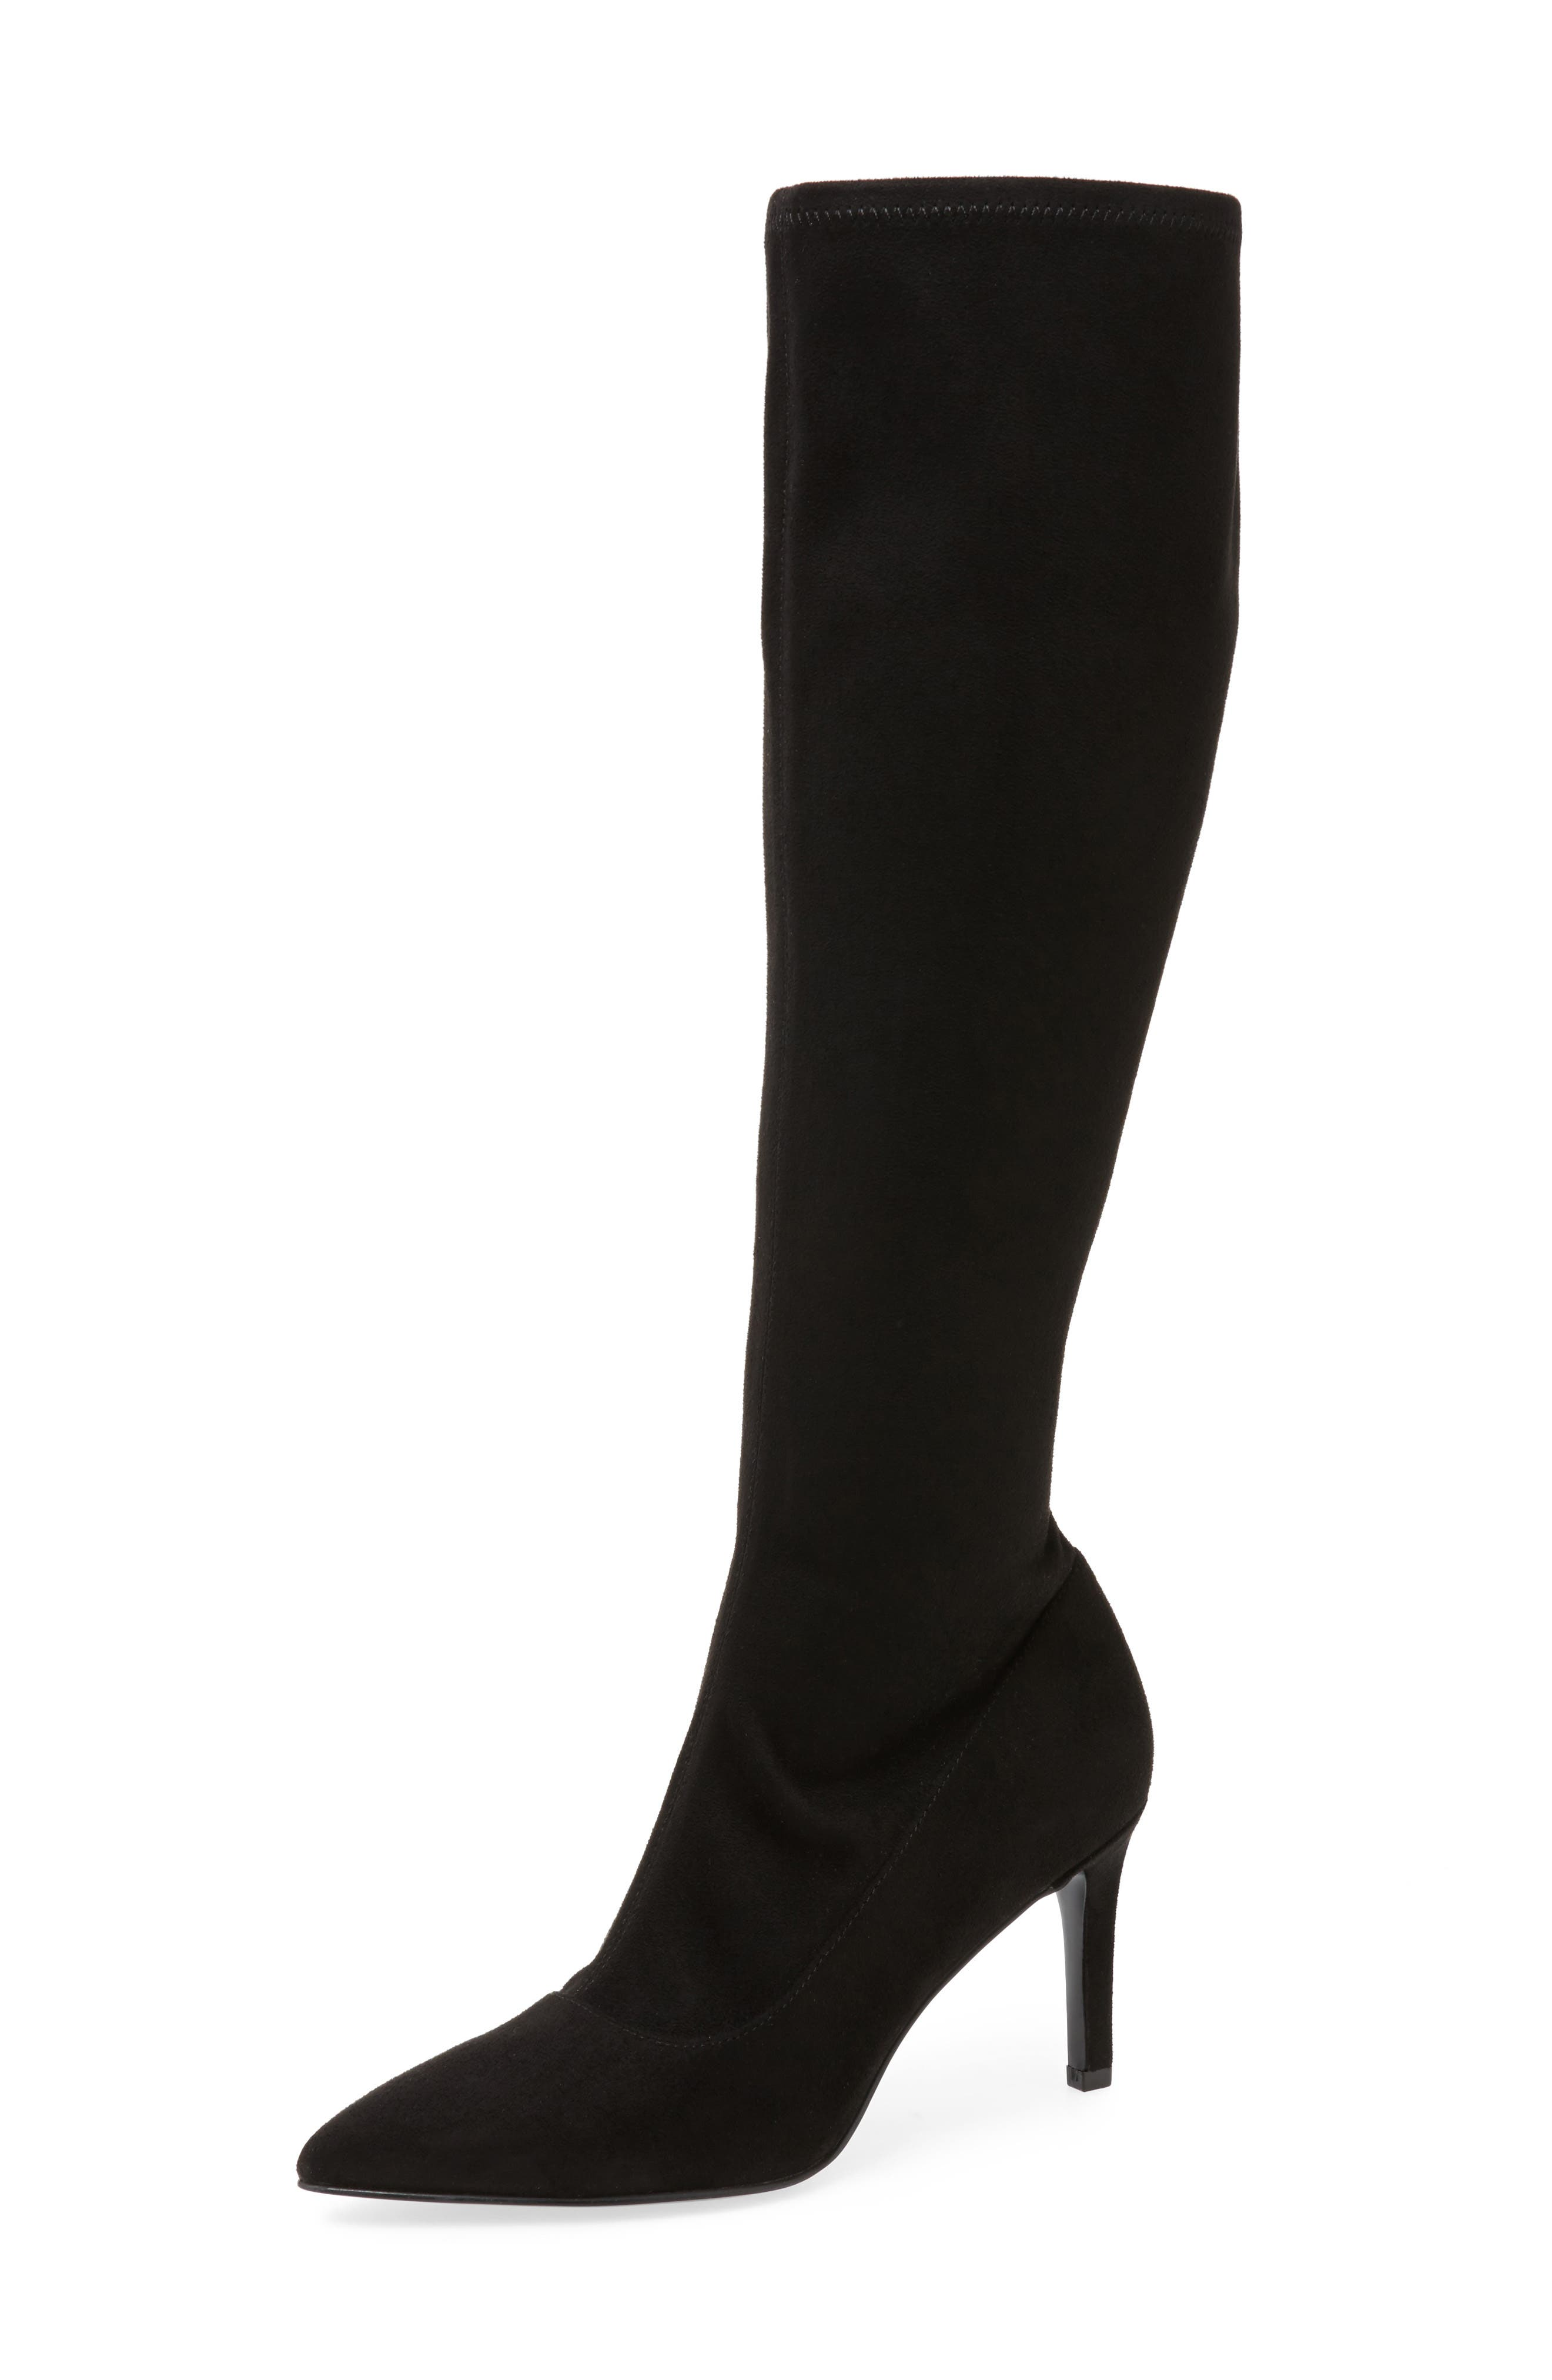 Alternate Image 1 Selected - Nine West Carrara Knee High Pointy Toe Boot (Women)